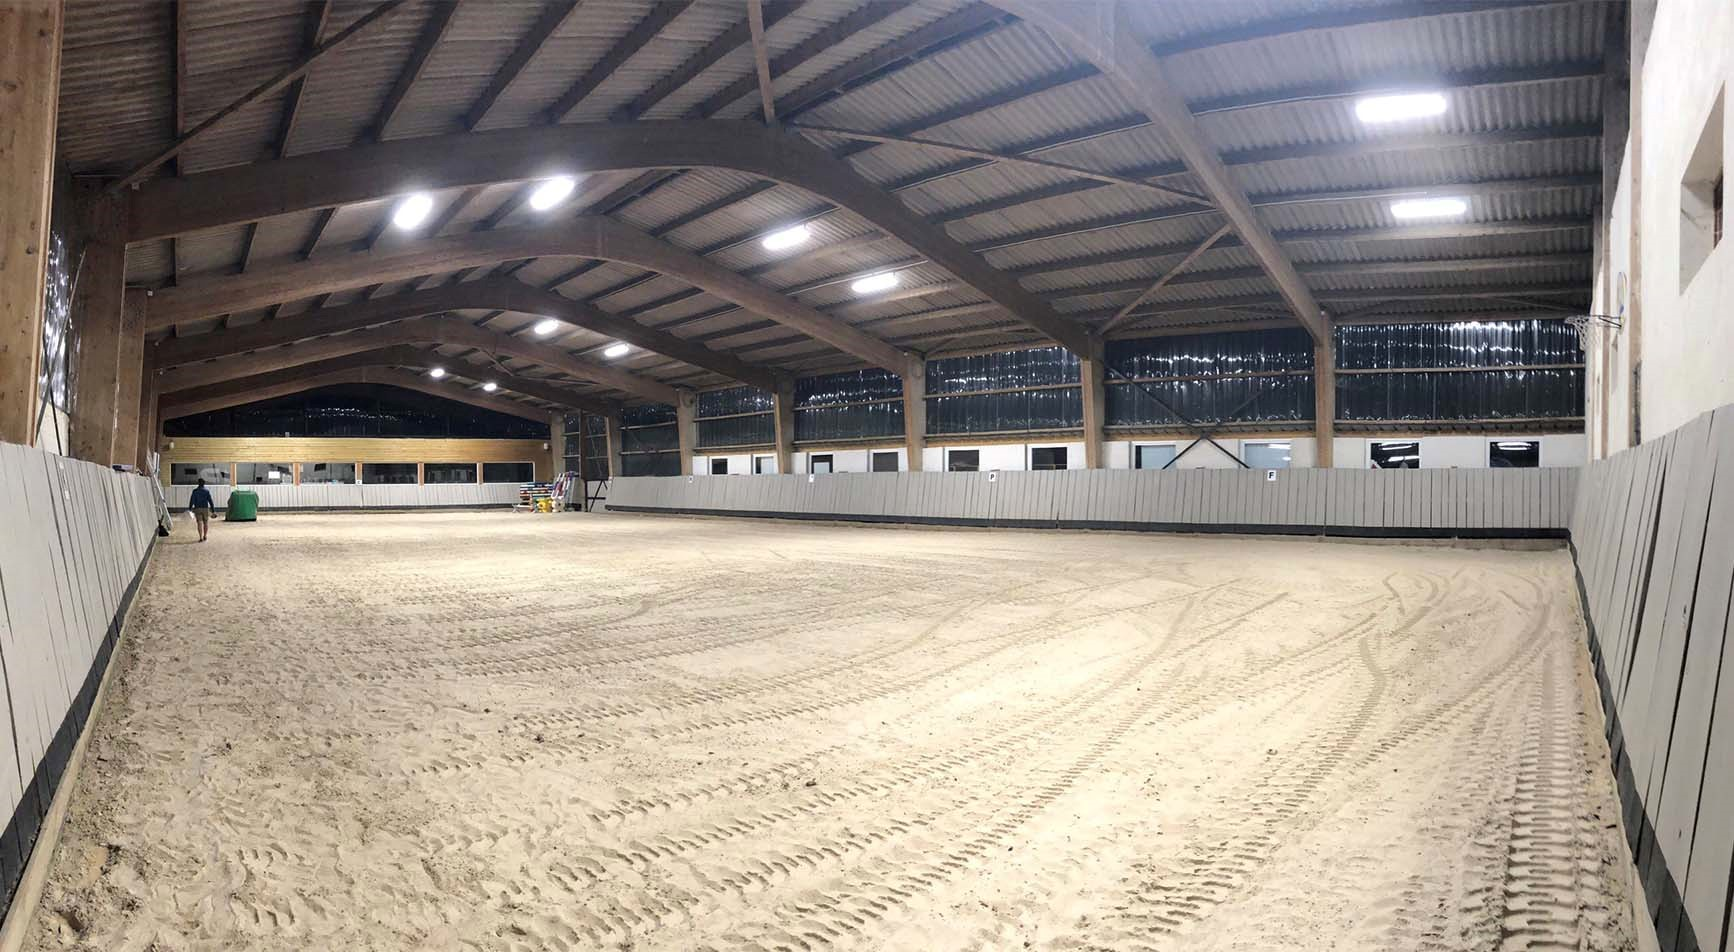 Magnanville equestrian center lighted by PROXIMAL